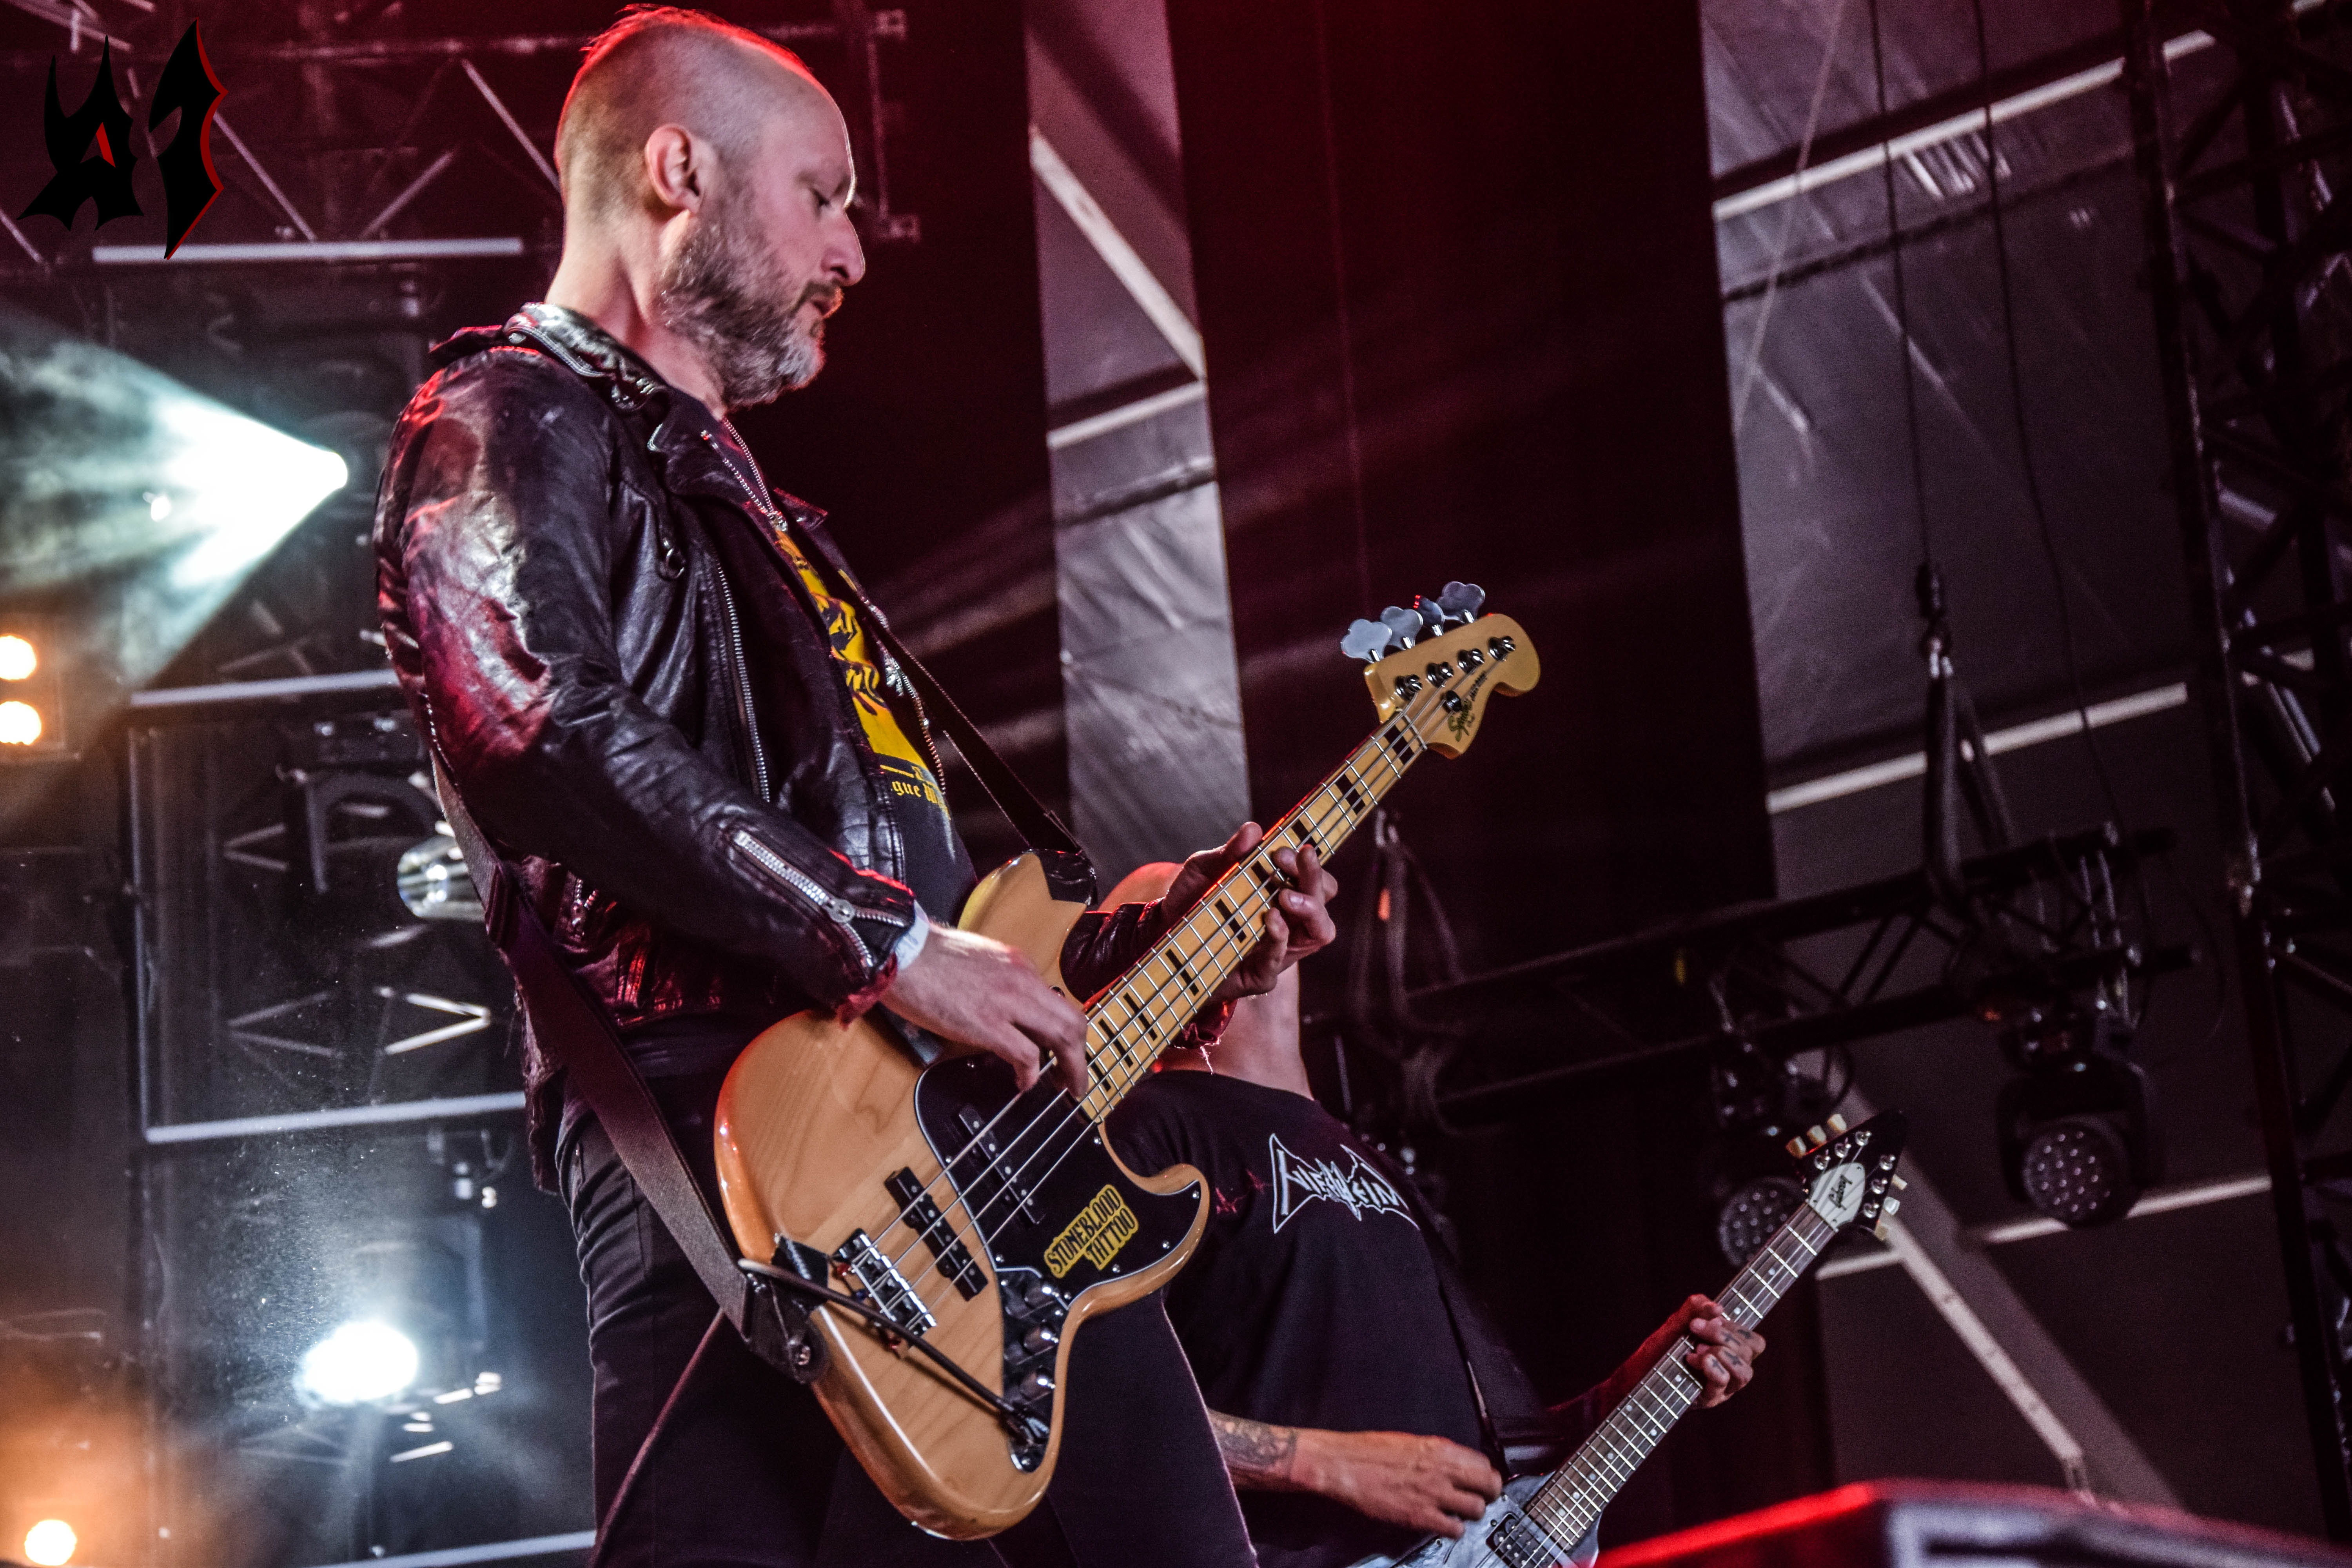 Hellfest - Day 3 - The Lurking Fear 5